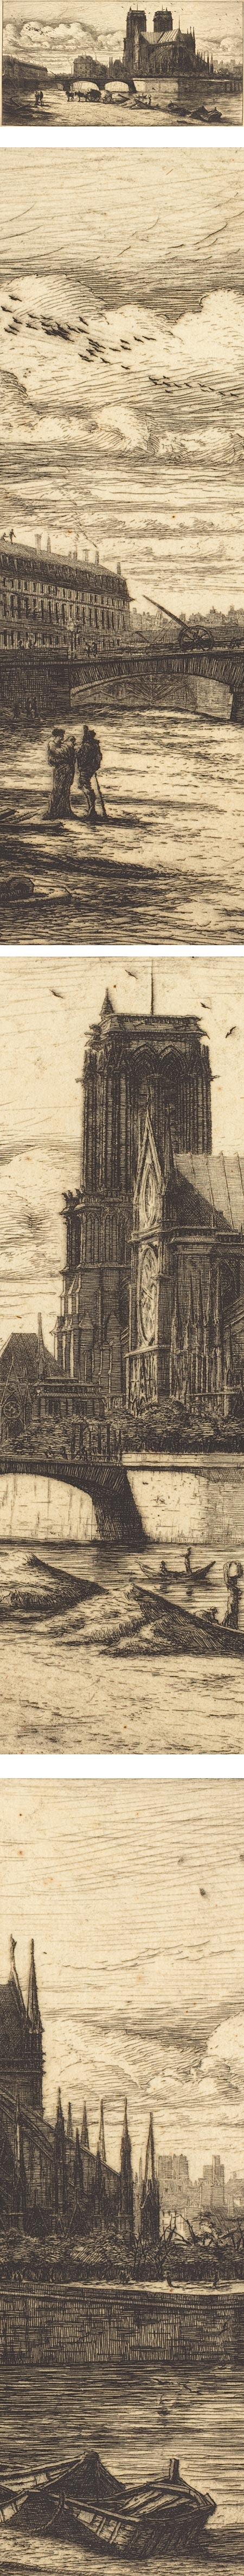 "L'abside de Notre-Dame de Paris</a></em> (The Apsis of the Cathedral of Notre Dame, Paris), Charles Meryon, etching""  /><br /> <em><a href="